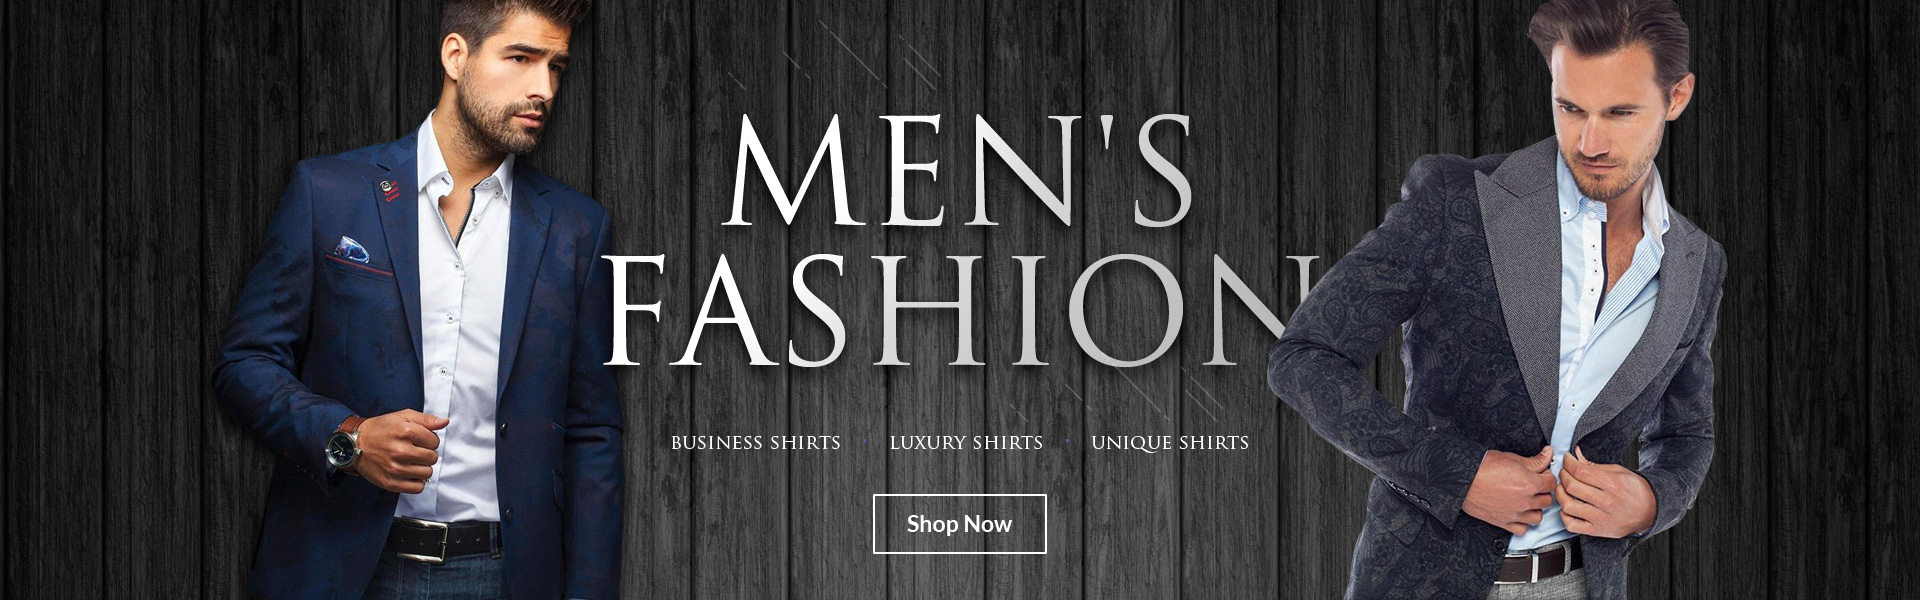 Nextlevel Couture Luxury Clothing Men S Fashion Free Shipping All Orders Designer Clothing